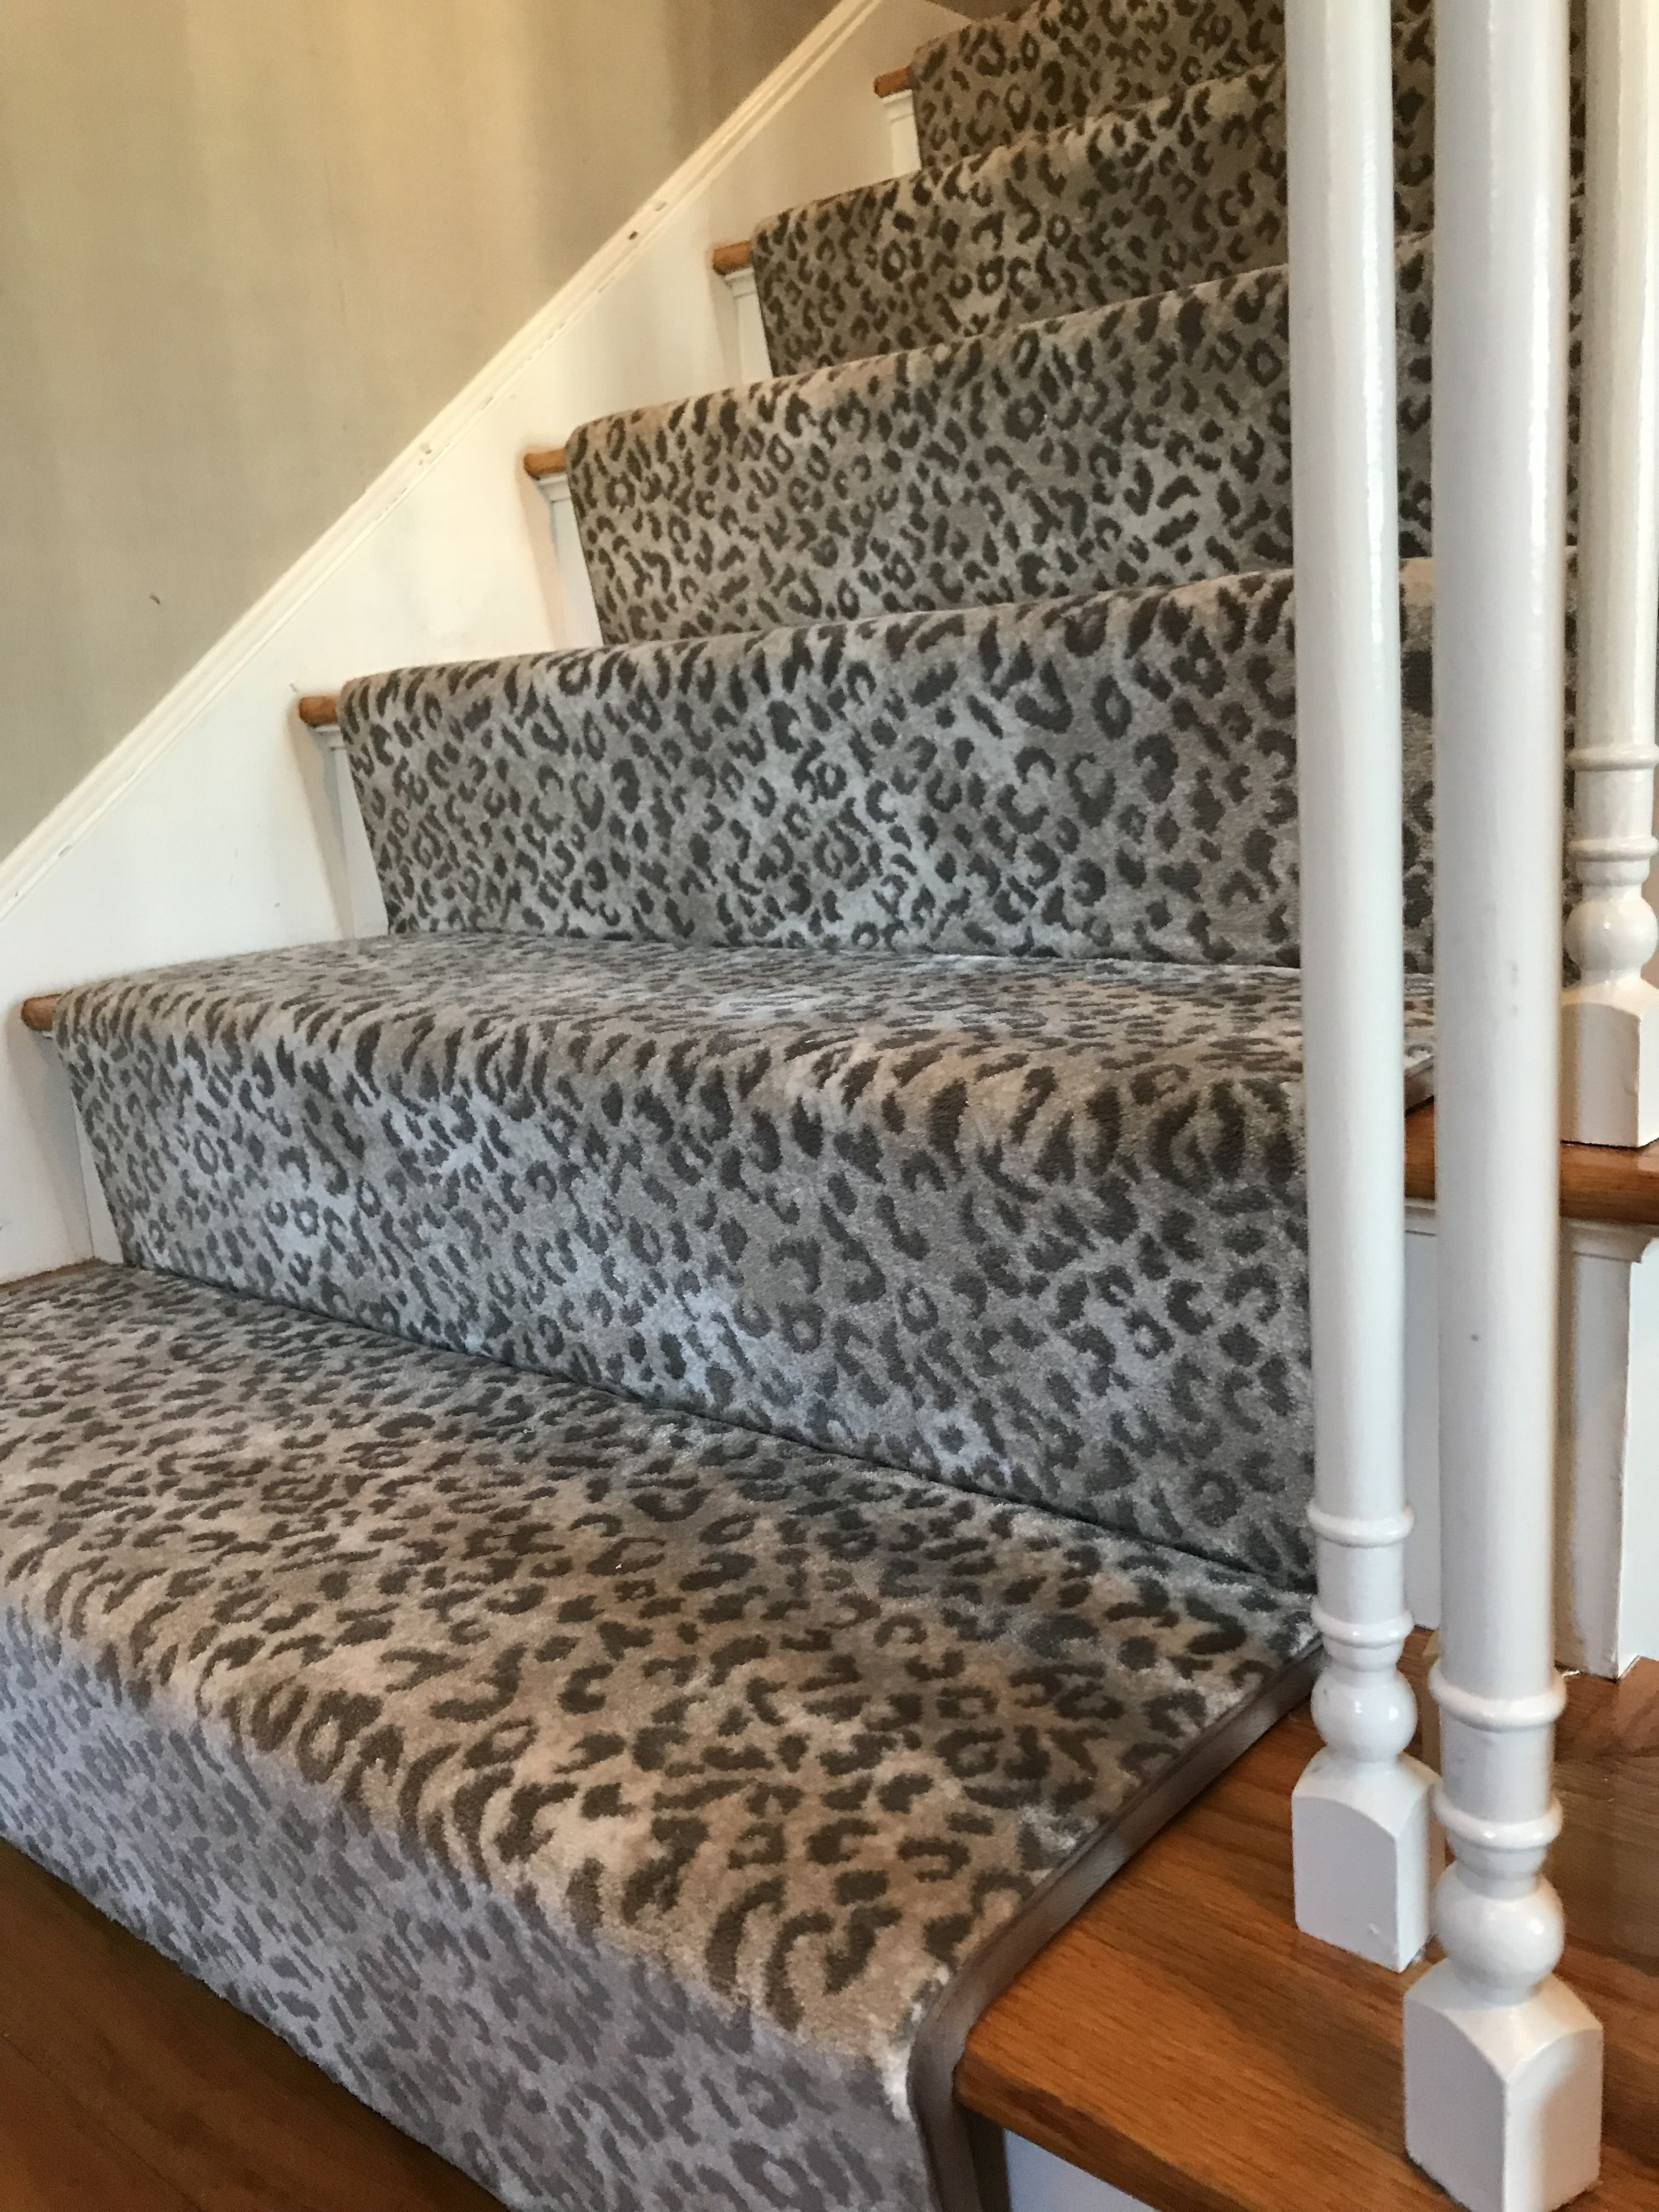 Pin By The Carpet Workroom On Animal Print Stair Runners Carpet   Cheap Carpet Runners For Stairs   Wooden Stairs   Stair Railing   Hallway Carpet   Staircase Remodel   Painted Stairs